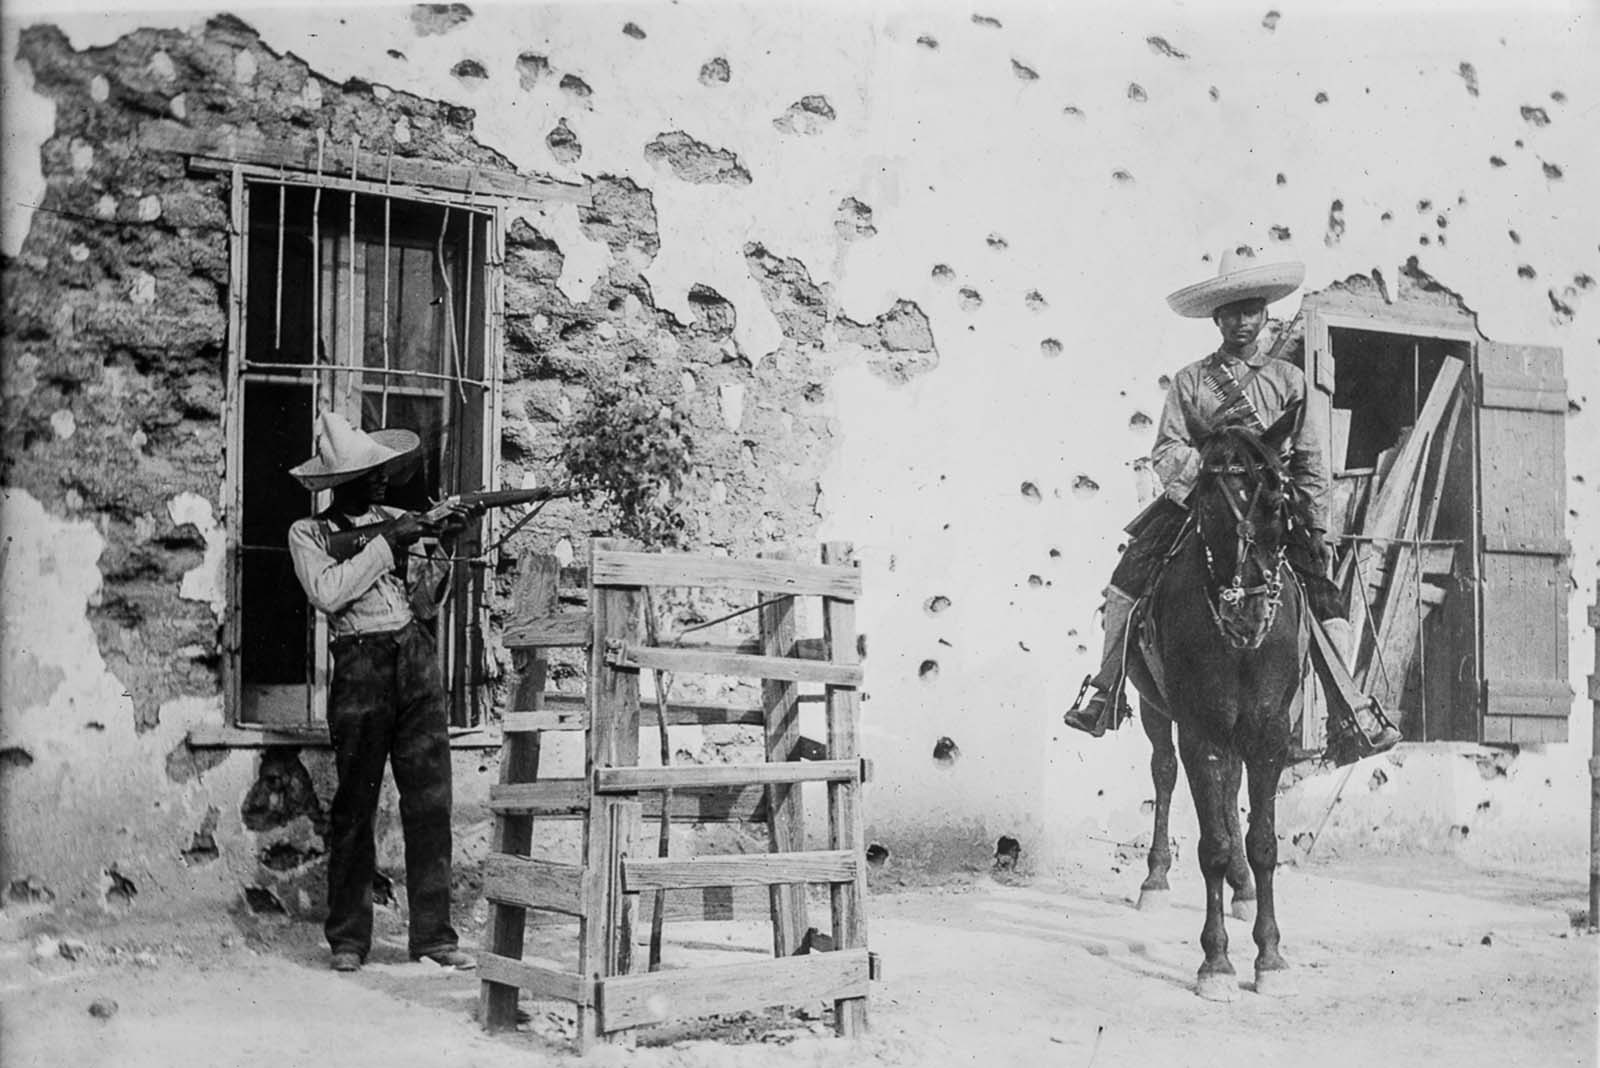 Rebels in front of an adobe house riddled with bullet holes in Ciudad Juárez.